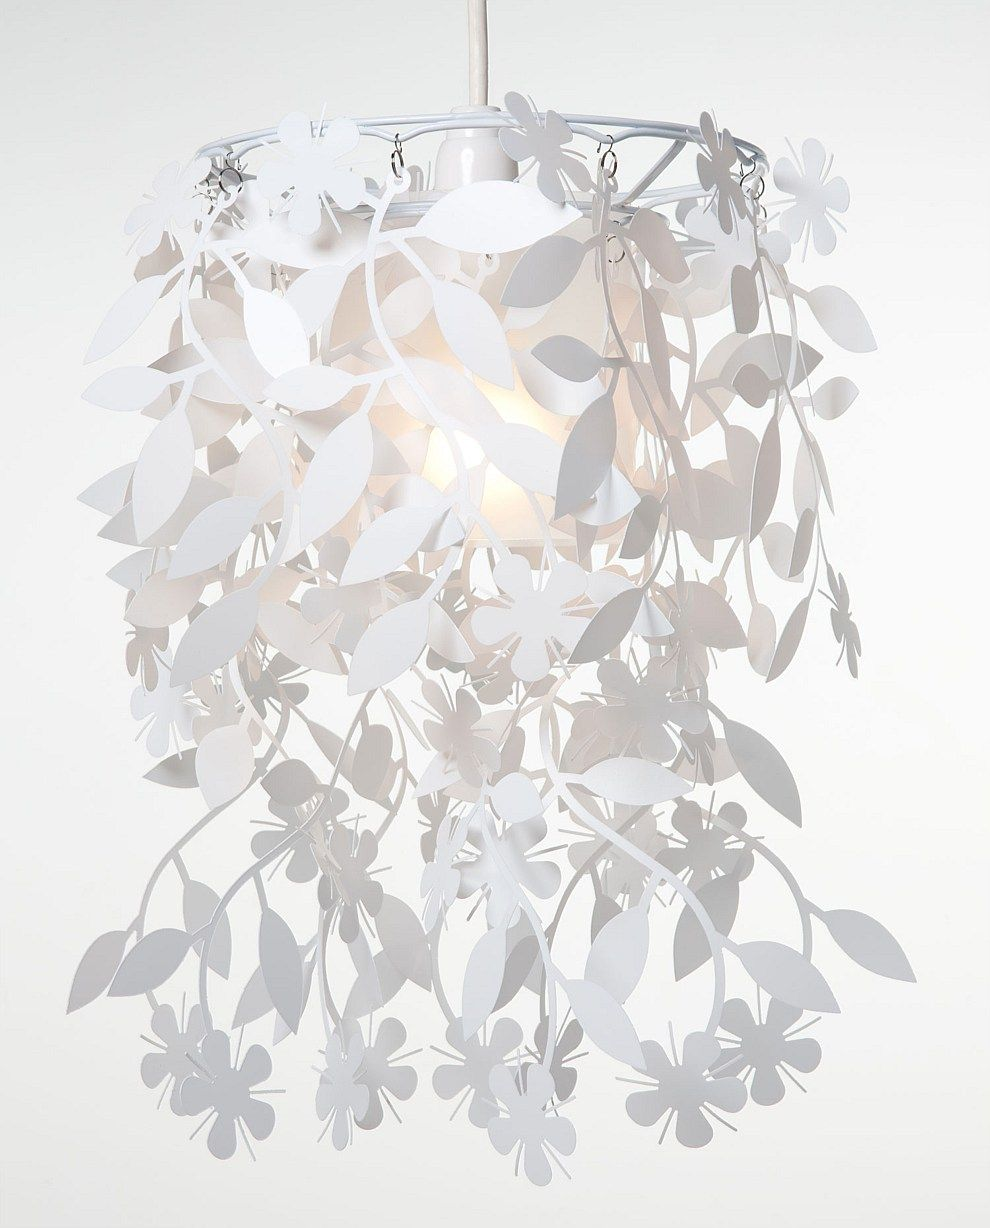 Lamp Shade To Hang Over Light Fixture Flower Lamp Flower Lamp Shade Lamp Shade